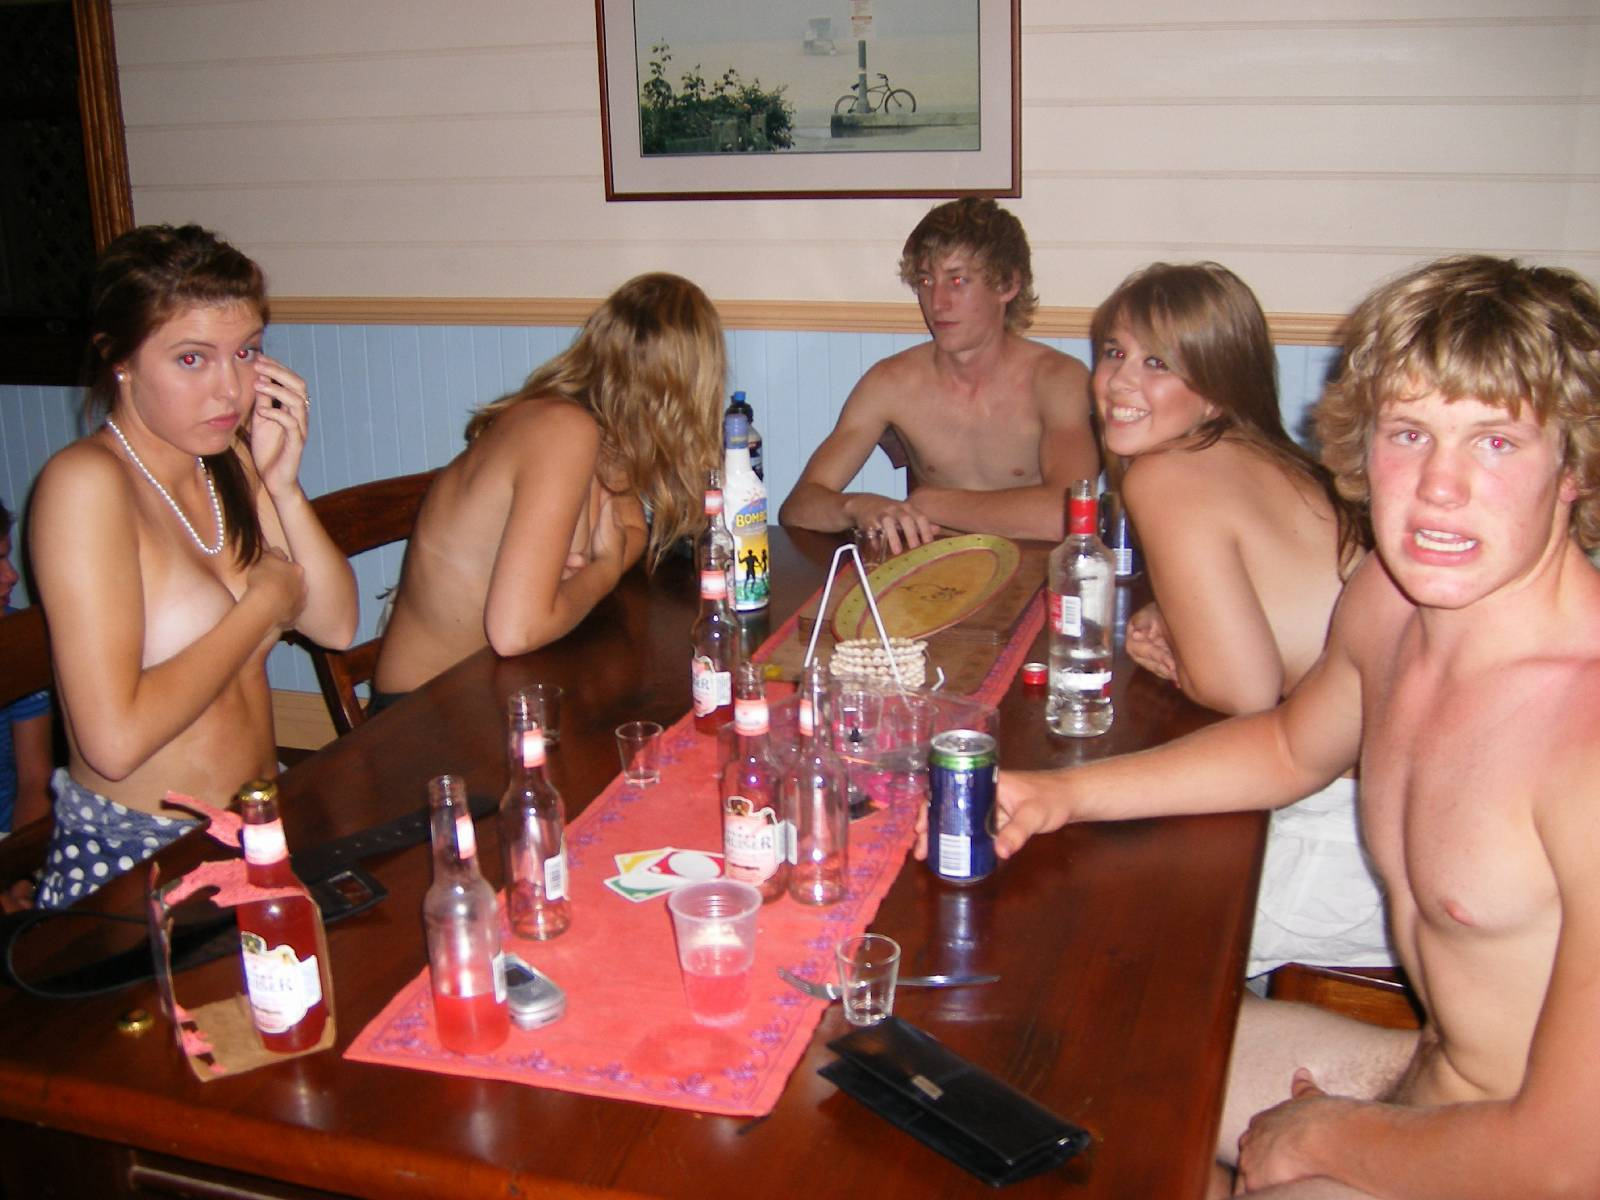 Valuable information drunk girl strips at party not